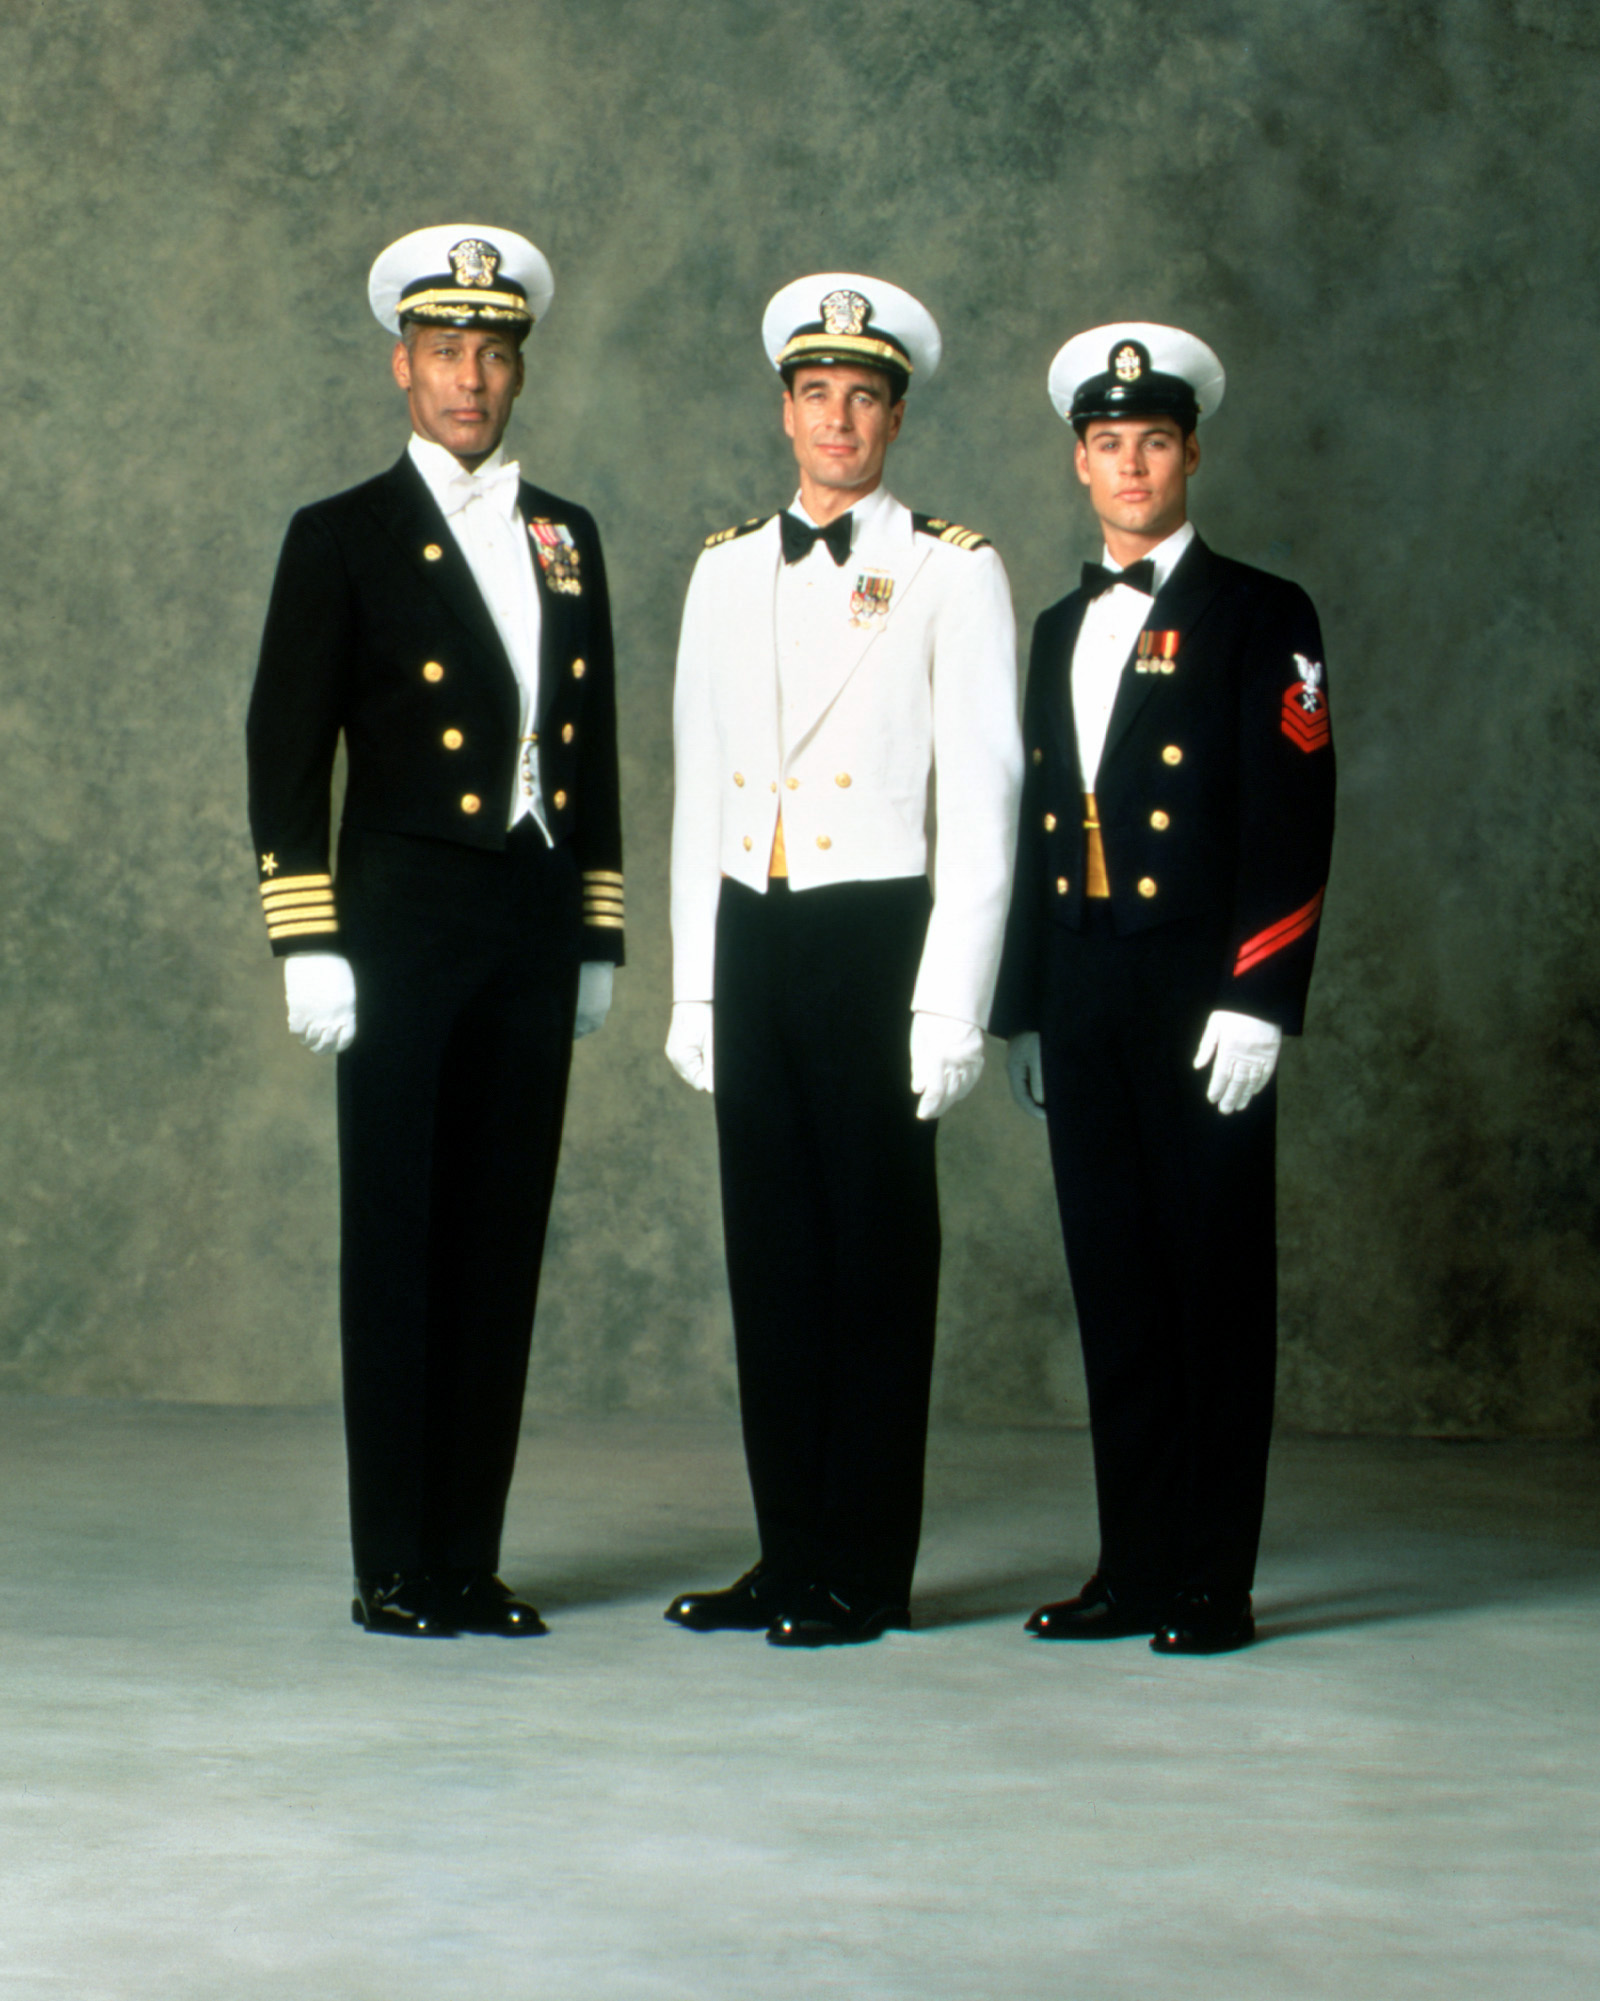 Left Mens Formal Dress Uniform With Blue Mess Jacket And White Tie